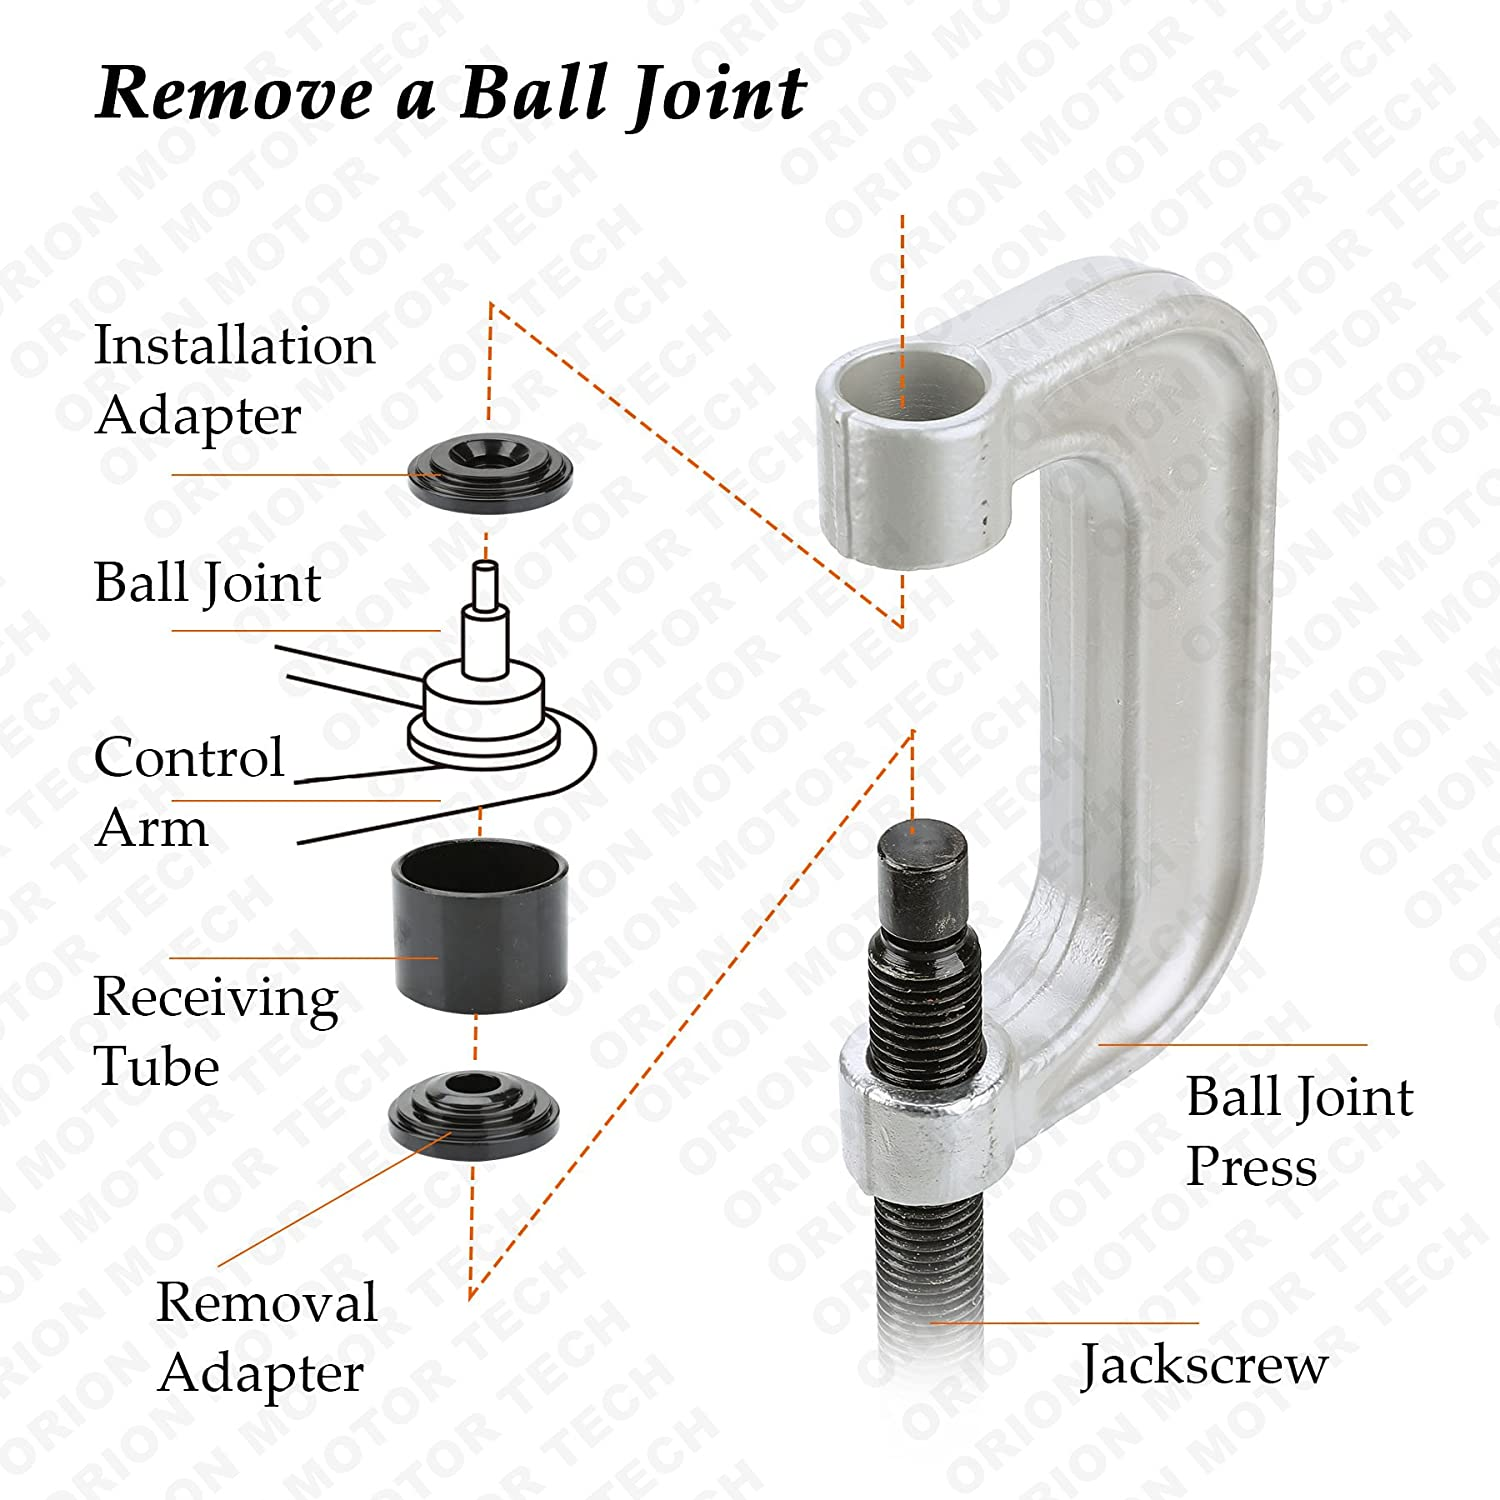 amazon com orionmotortech heavy duty ball joint press u joint rh amazon com upper ball joint diagram ball joint suspension diagram